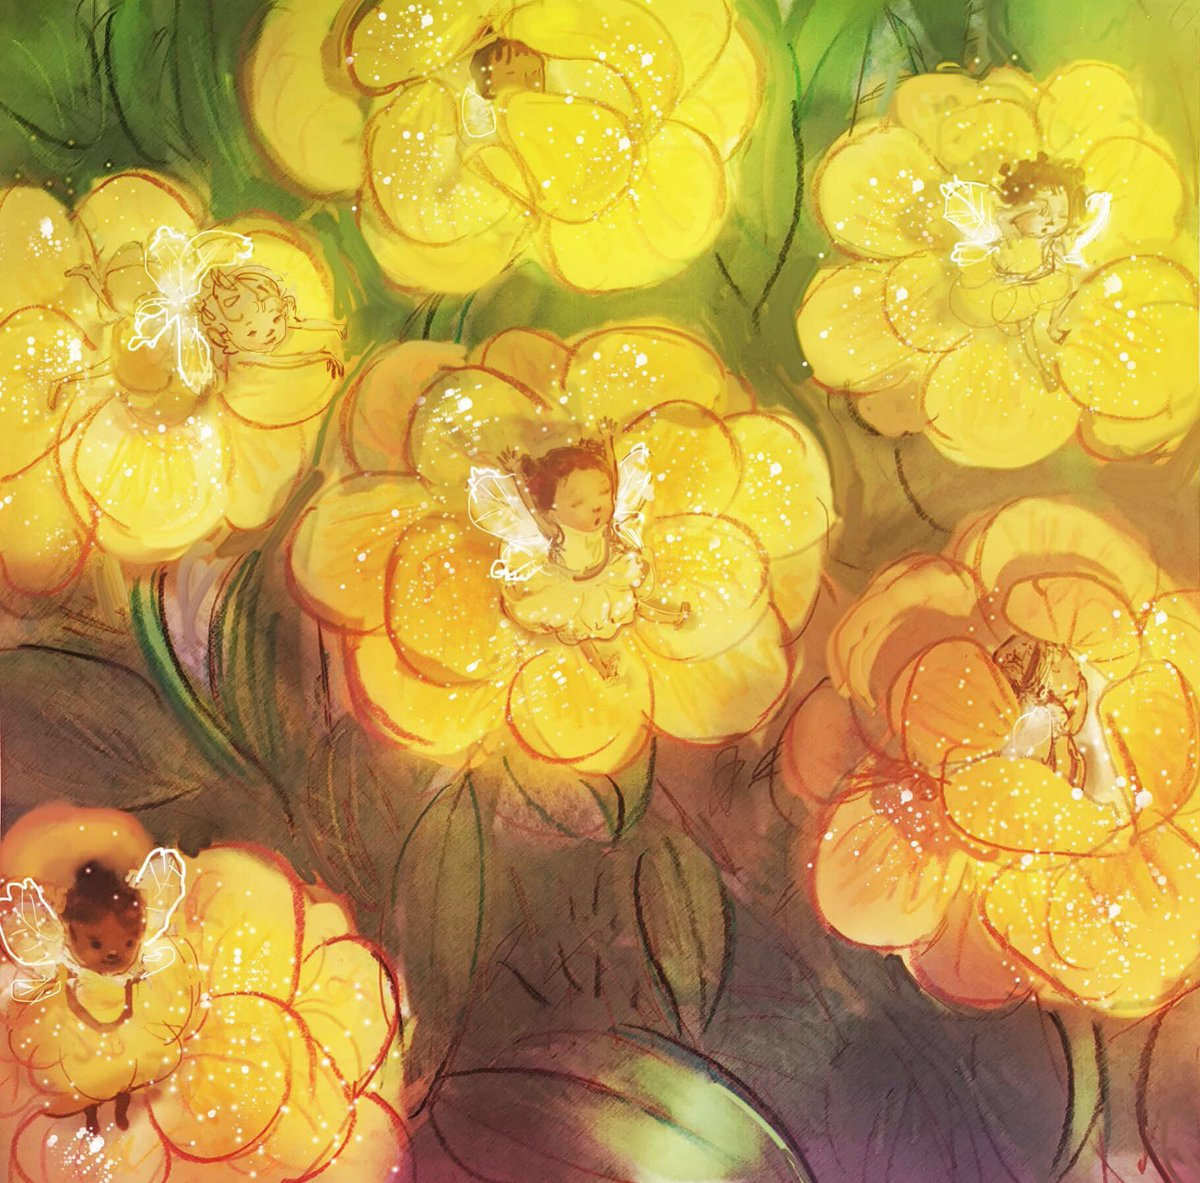 A little early for #colour_collective today, as I am chauffeuring teenage girls to the mall today (yay?).  When these flowers #bloom, #fairies awaken. #lemonyellow #illustration #kidlitart It is also for #scbwidrawthis Happy Friday! #fairygarden #blooms<br>http://pic.twitter.com/Q4W3e9krbP